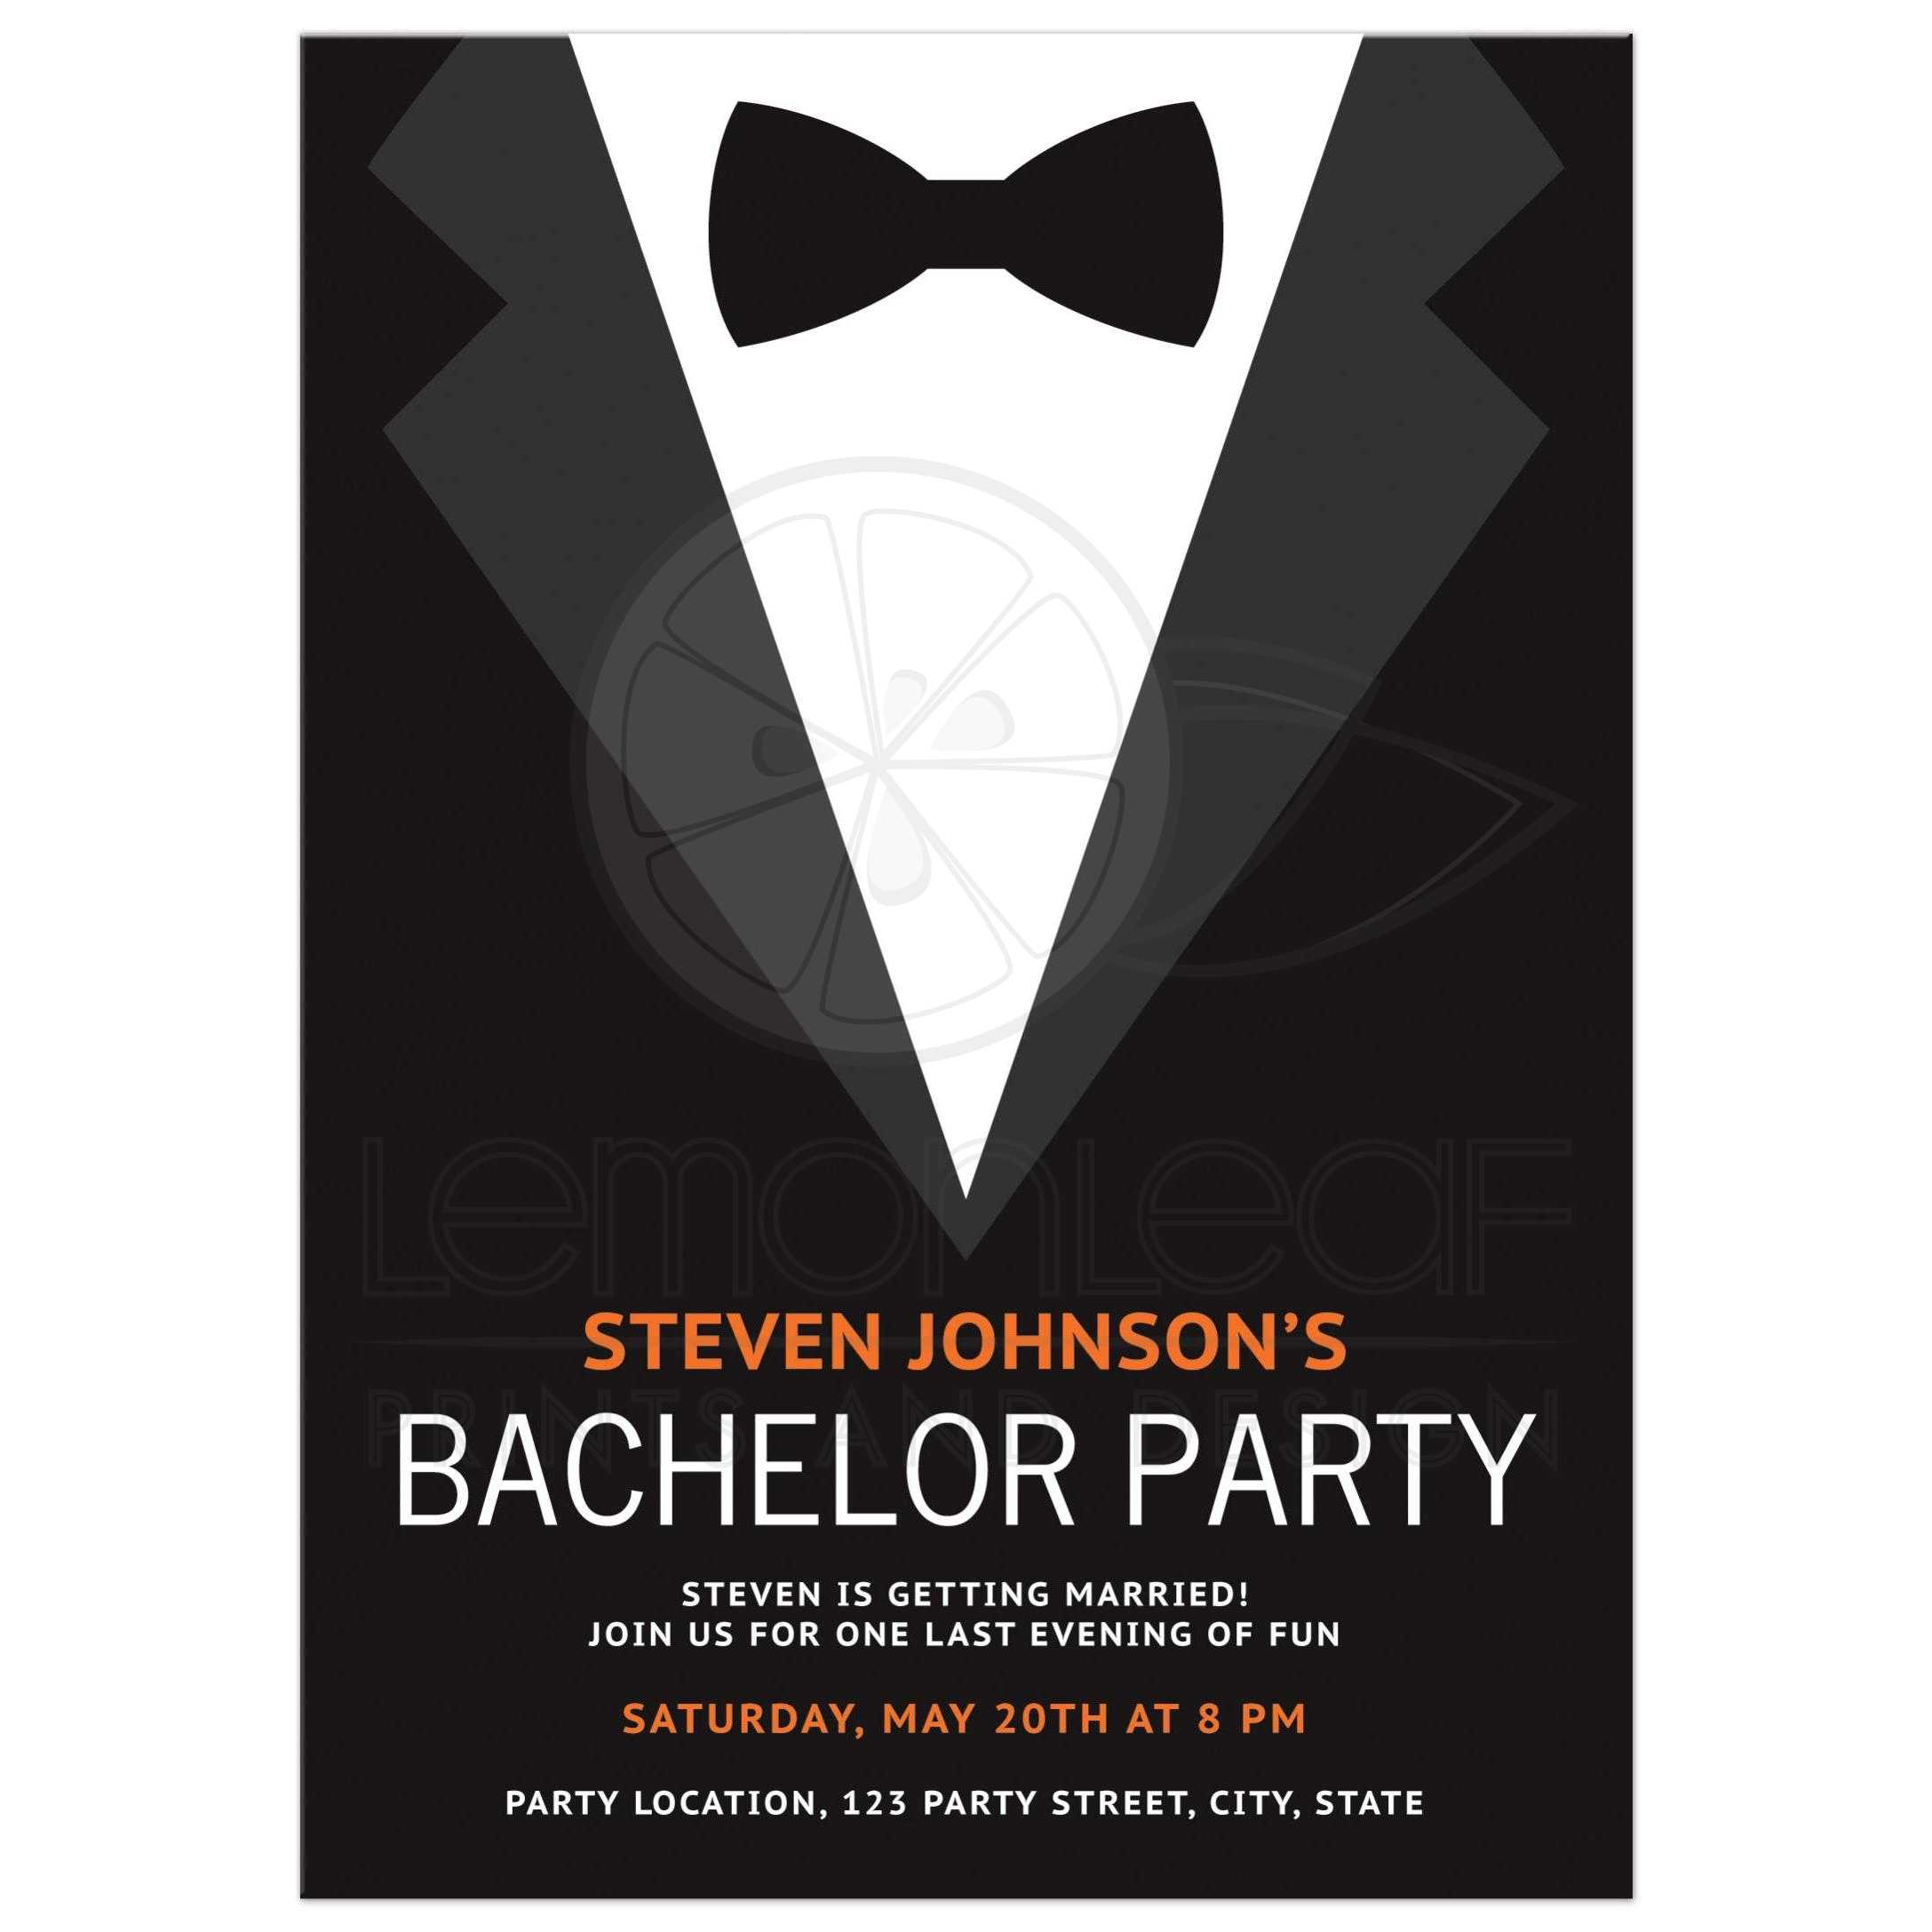 Bachelor party invitation with bow tie | Bold and modern ...